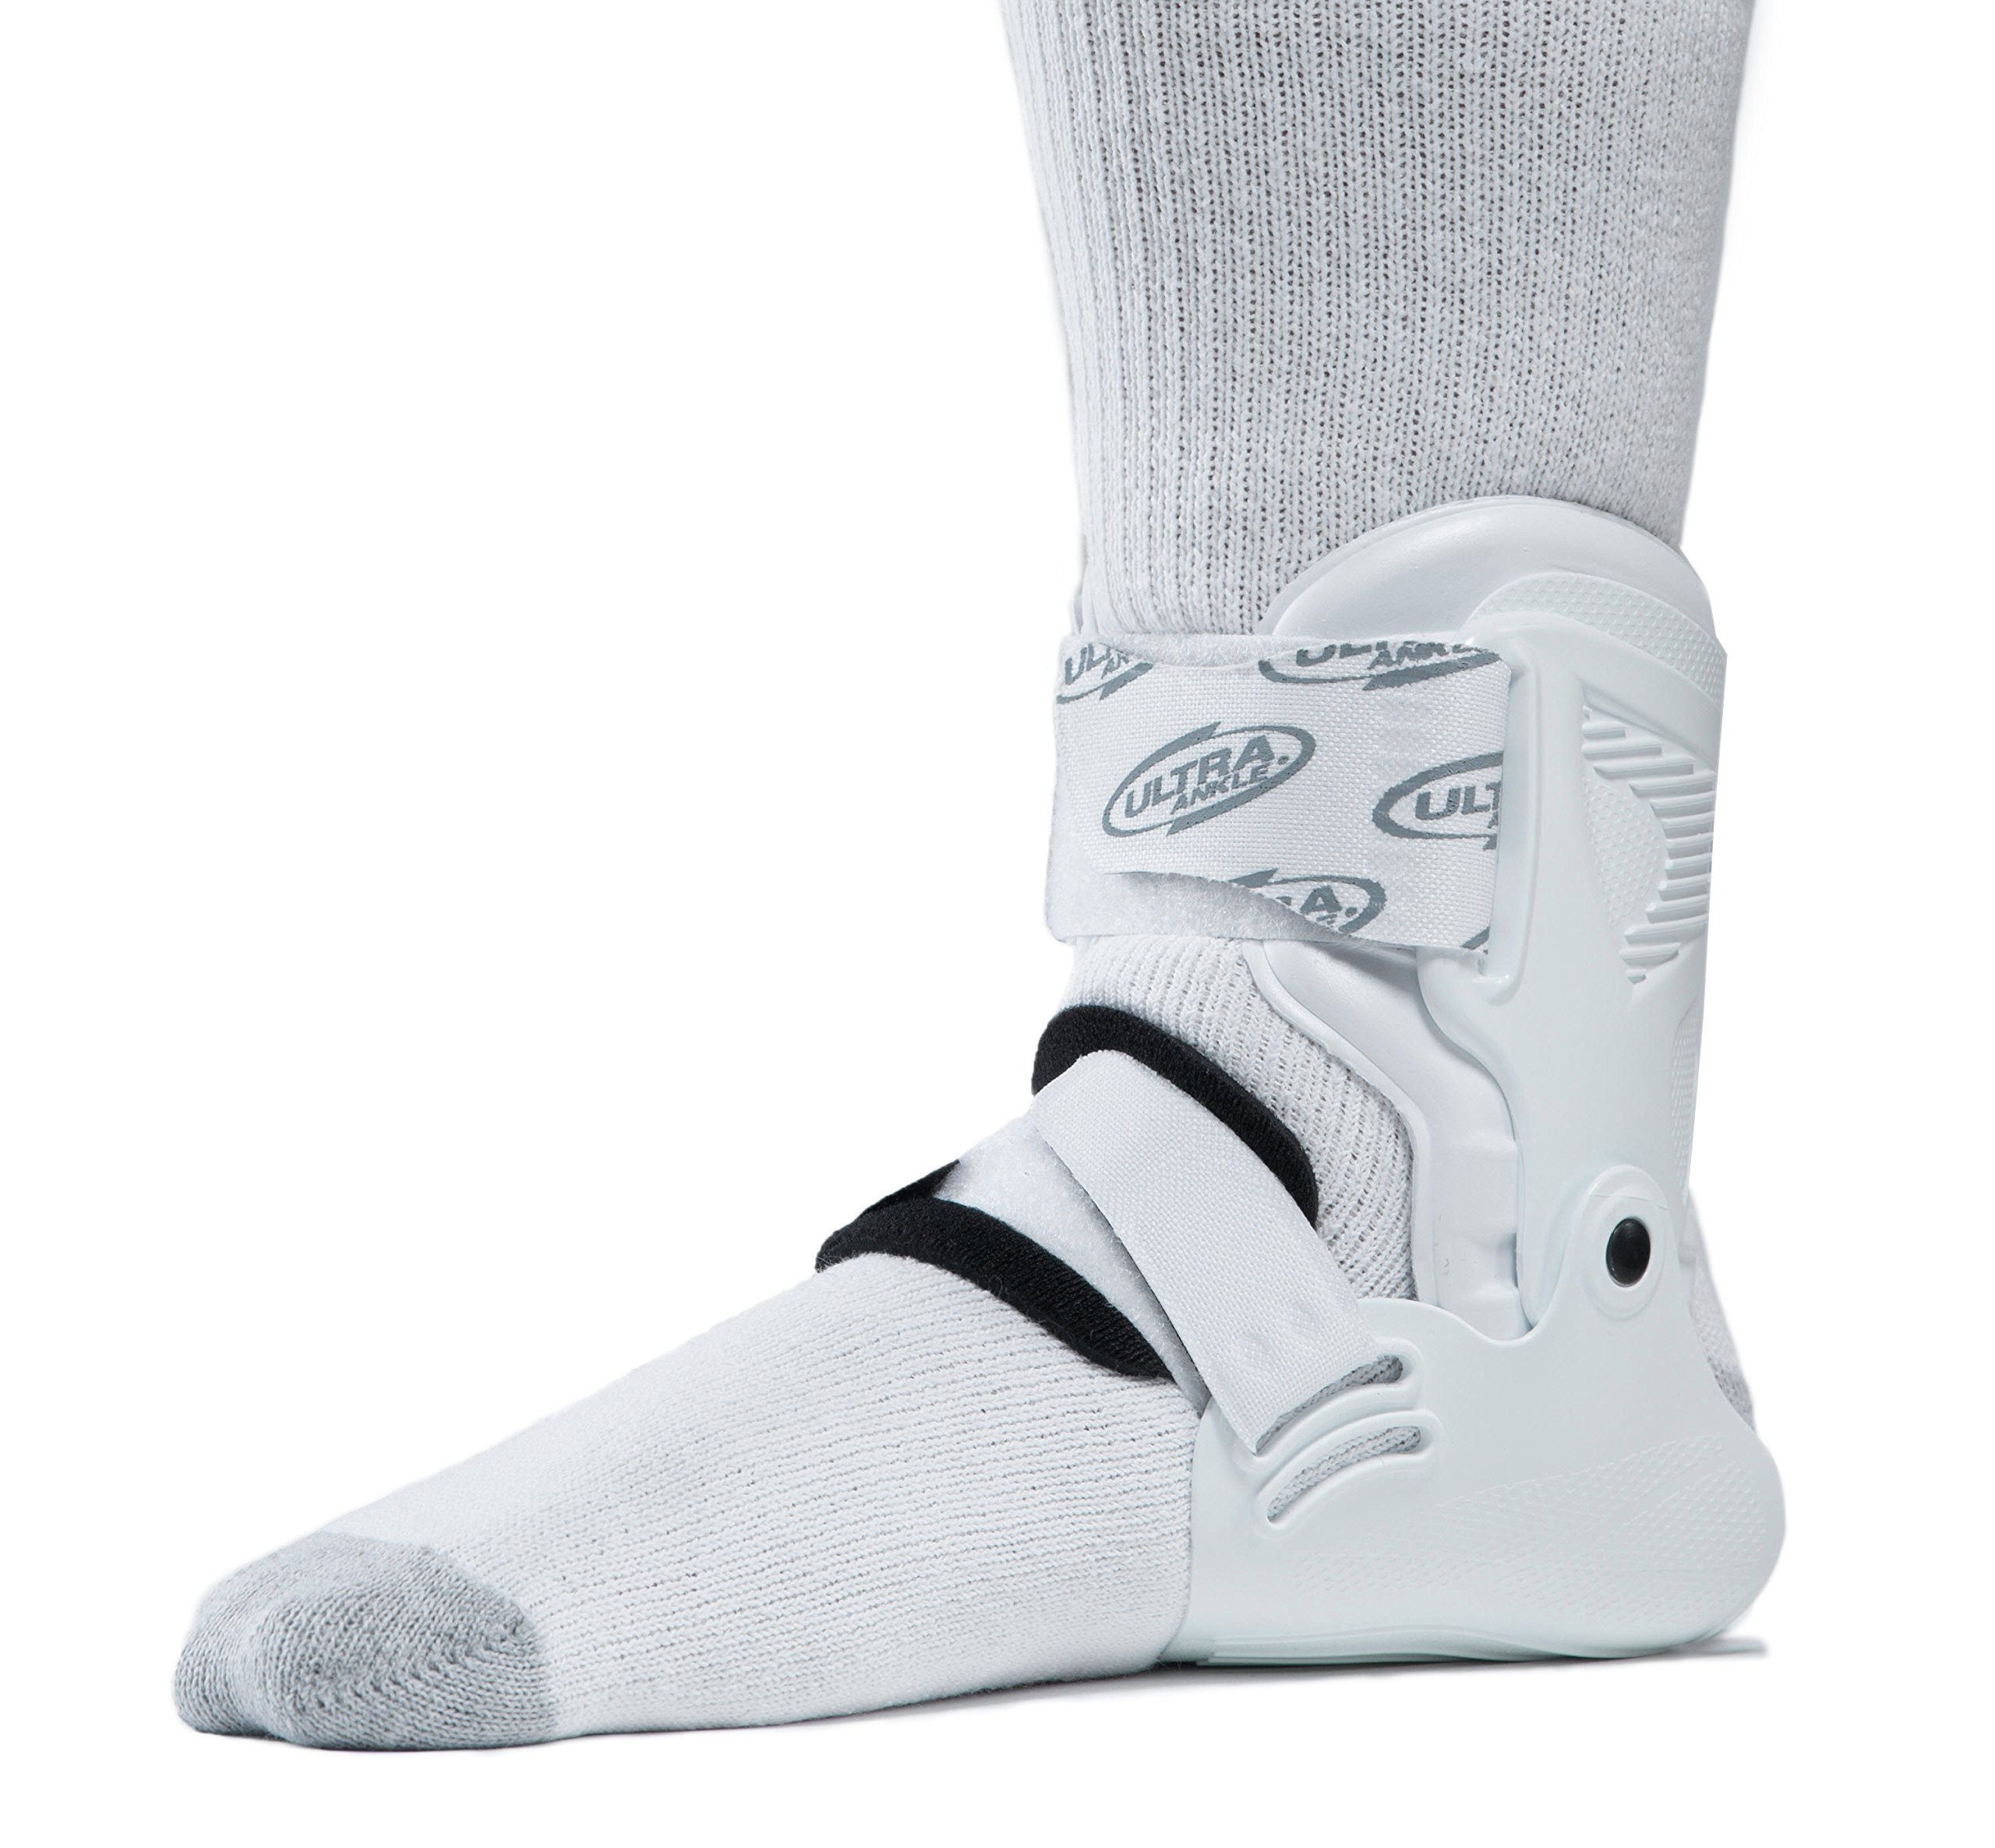 Ultra Ankle Ultra Zoom Ankle Brace for Injury Prevention, Ankle Support and Helping to Prevent sprained Ankles. Performance and Protection Without Limits. (Small/Medium, White)